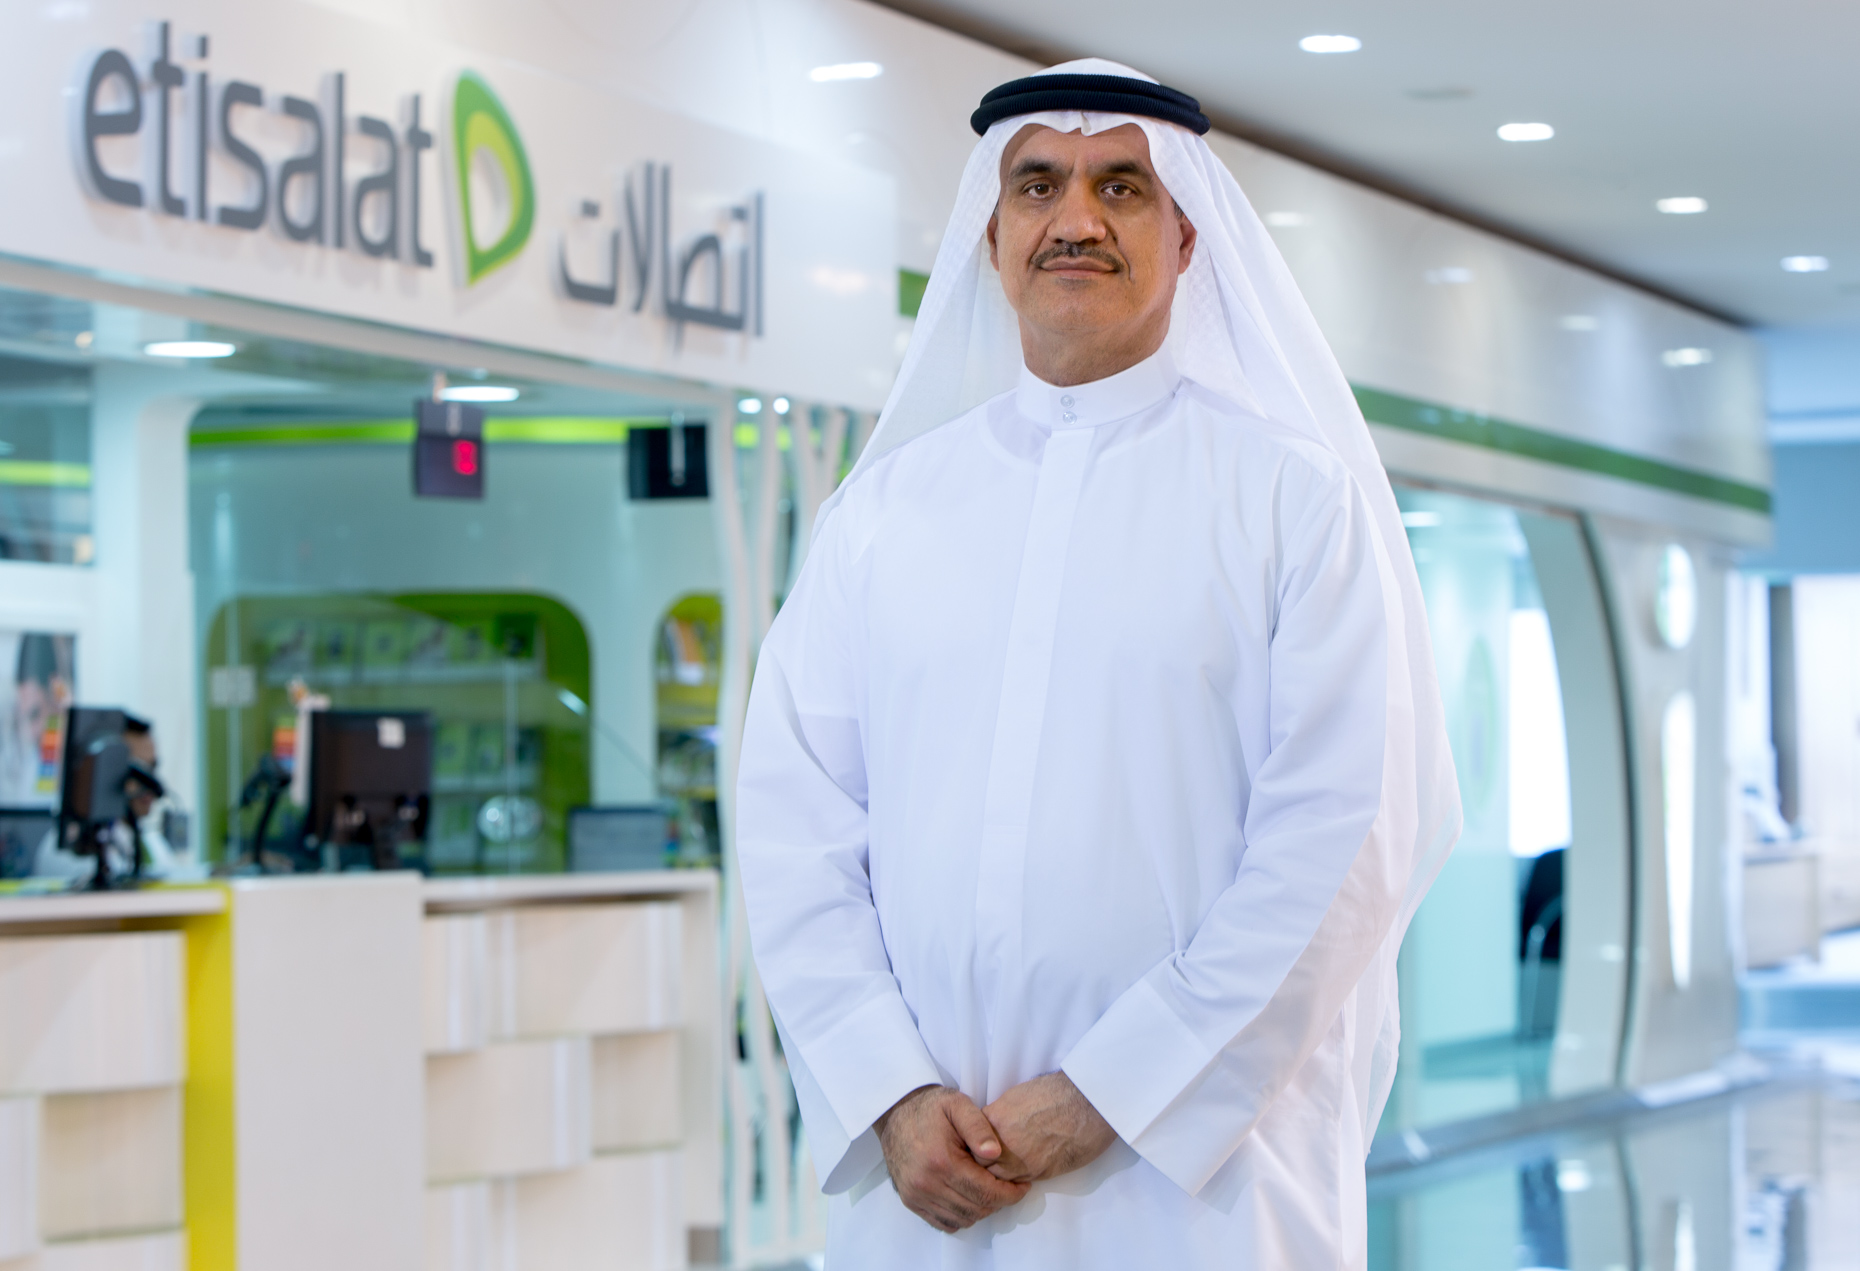 Etisalat Chairman | Professional Photography